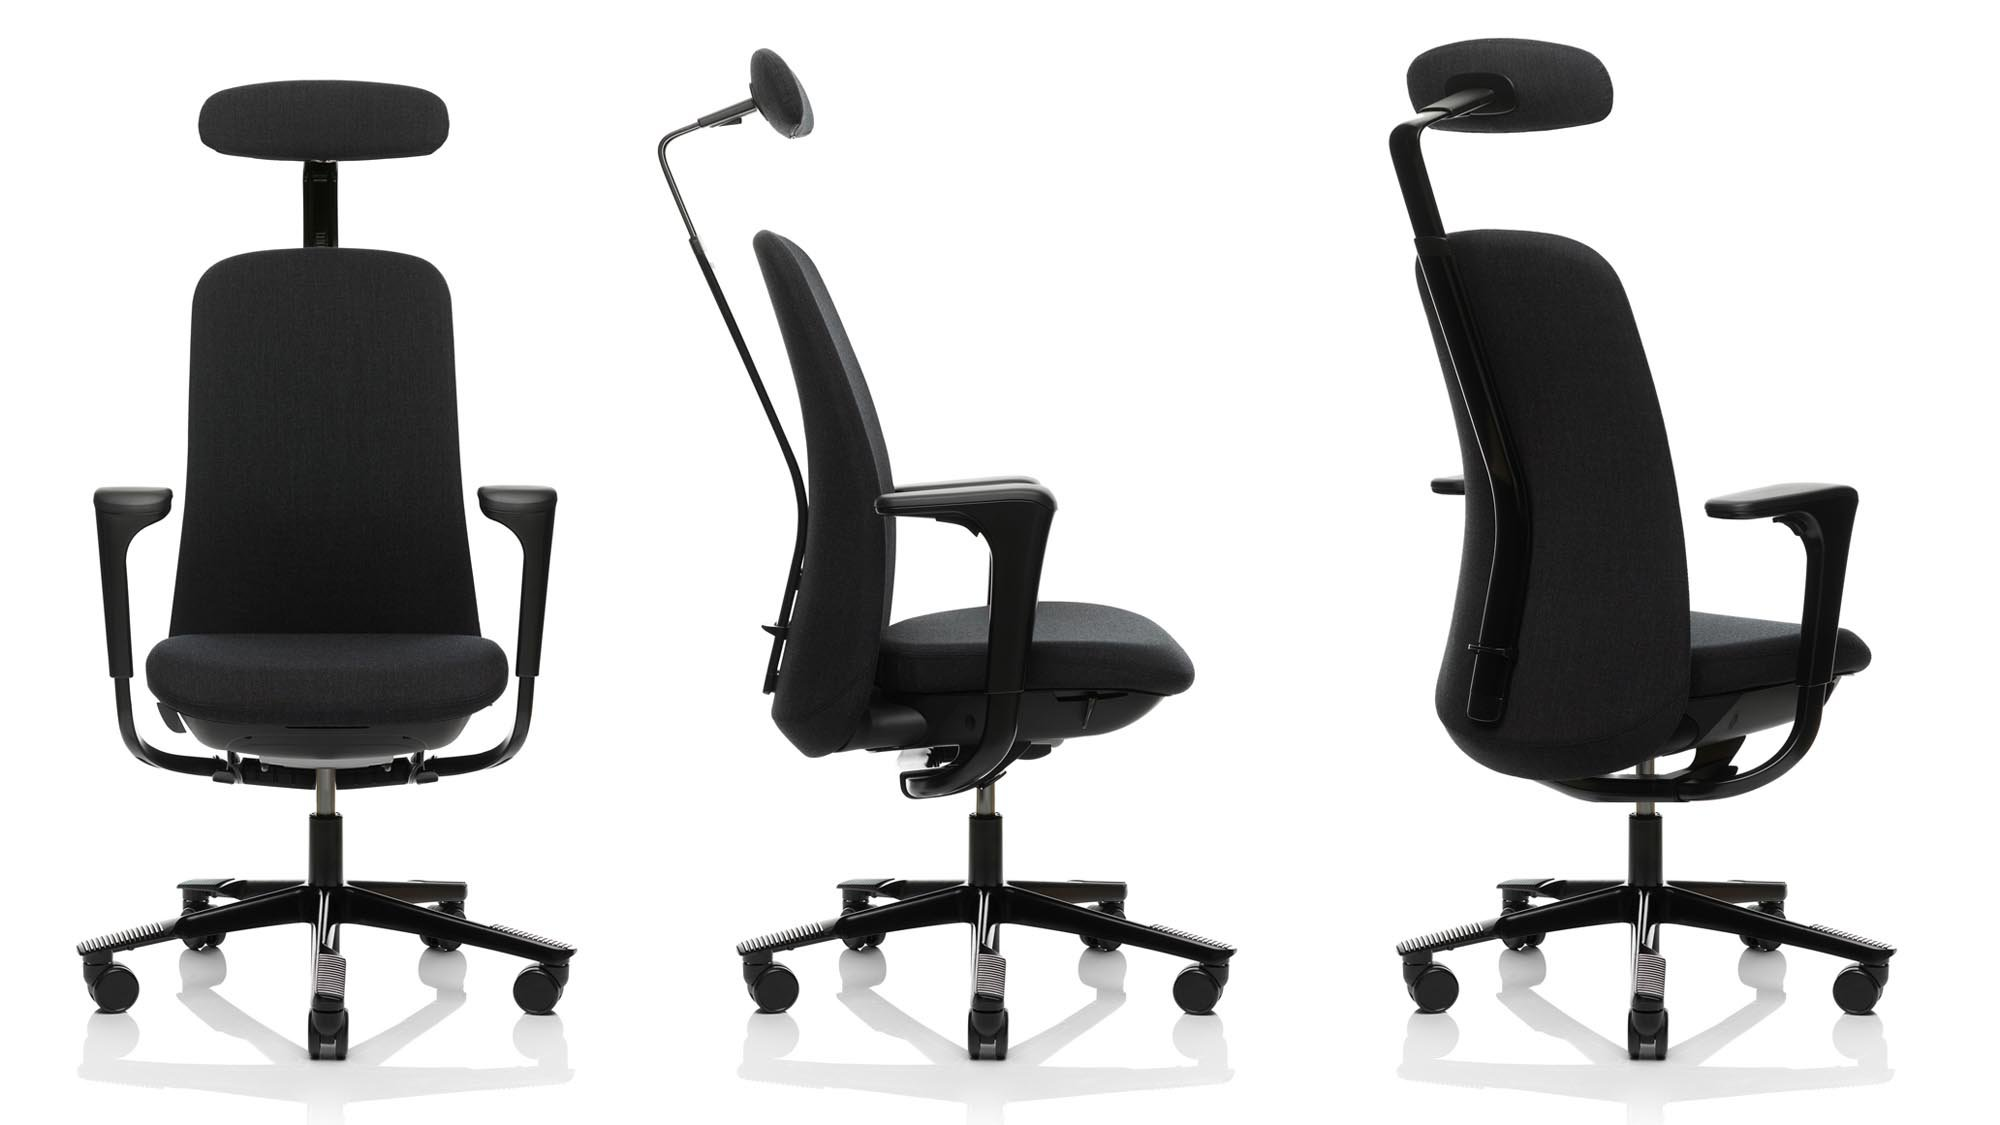 Best Ergonomic Office Chair 2017: Good Posture Desk Chair